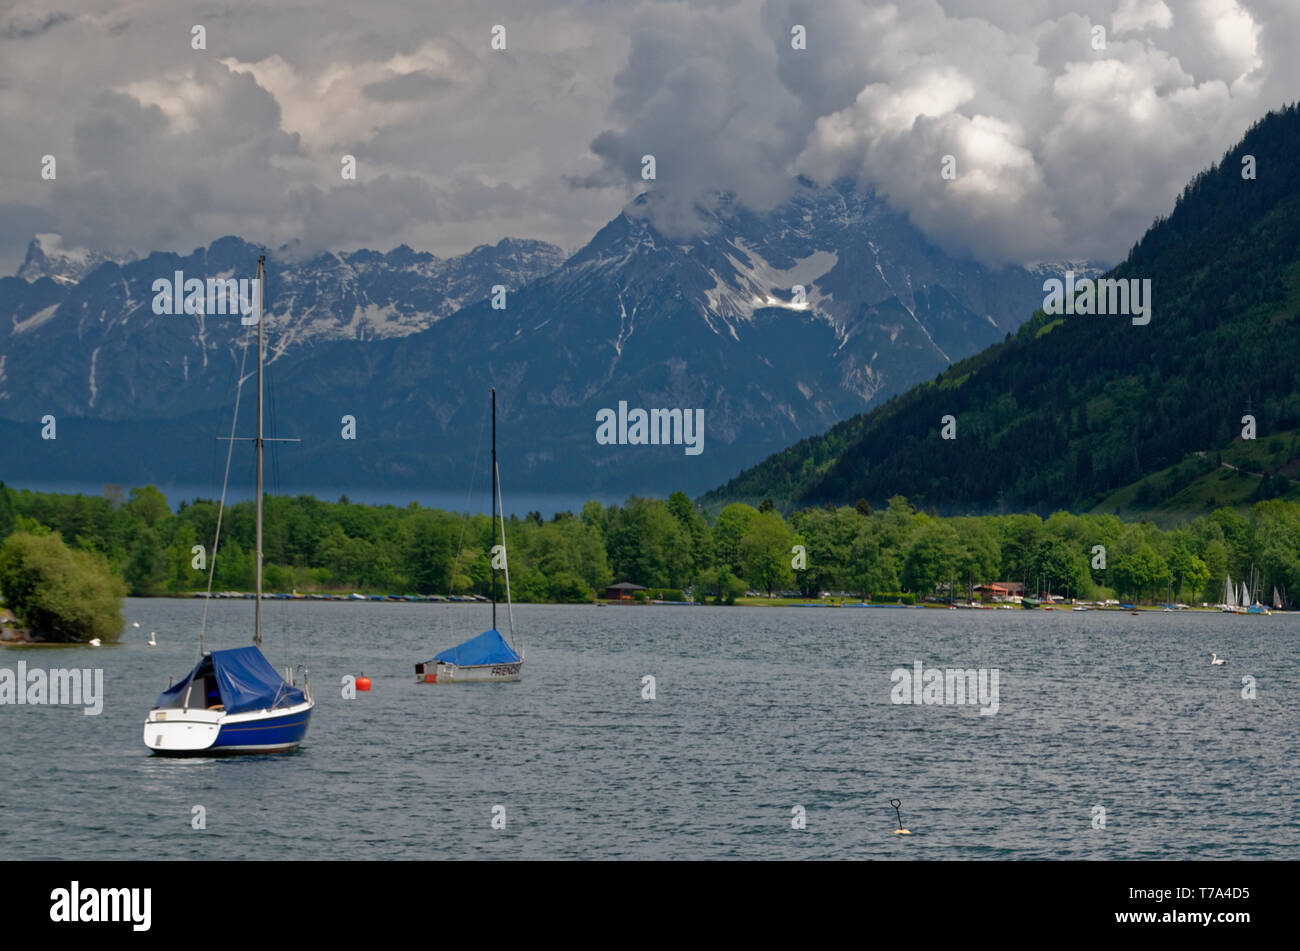 Anchored sailing boats on Zeller See (Lake Zell) pointing towards the mountains opposite Zell am See in Austria - Stock Image